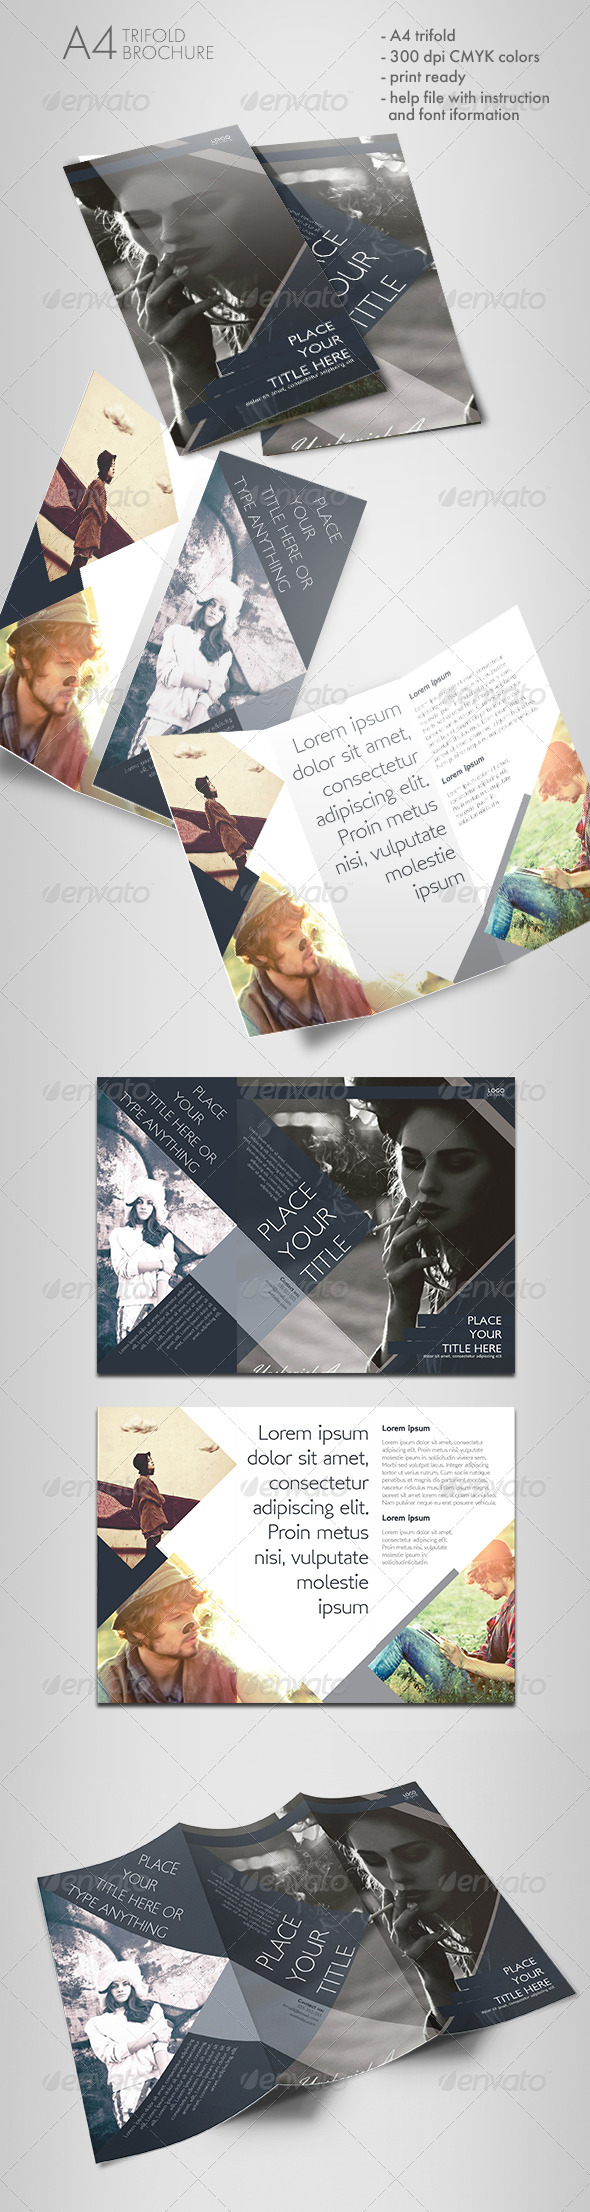 GraphicRiver Shaped Trifold Brochure 7010029